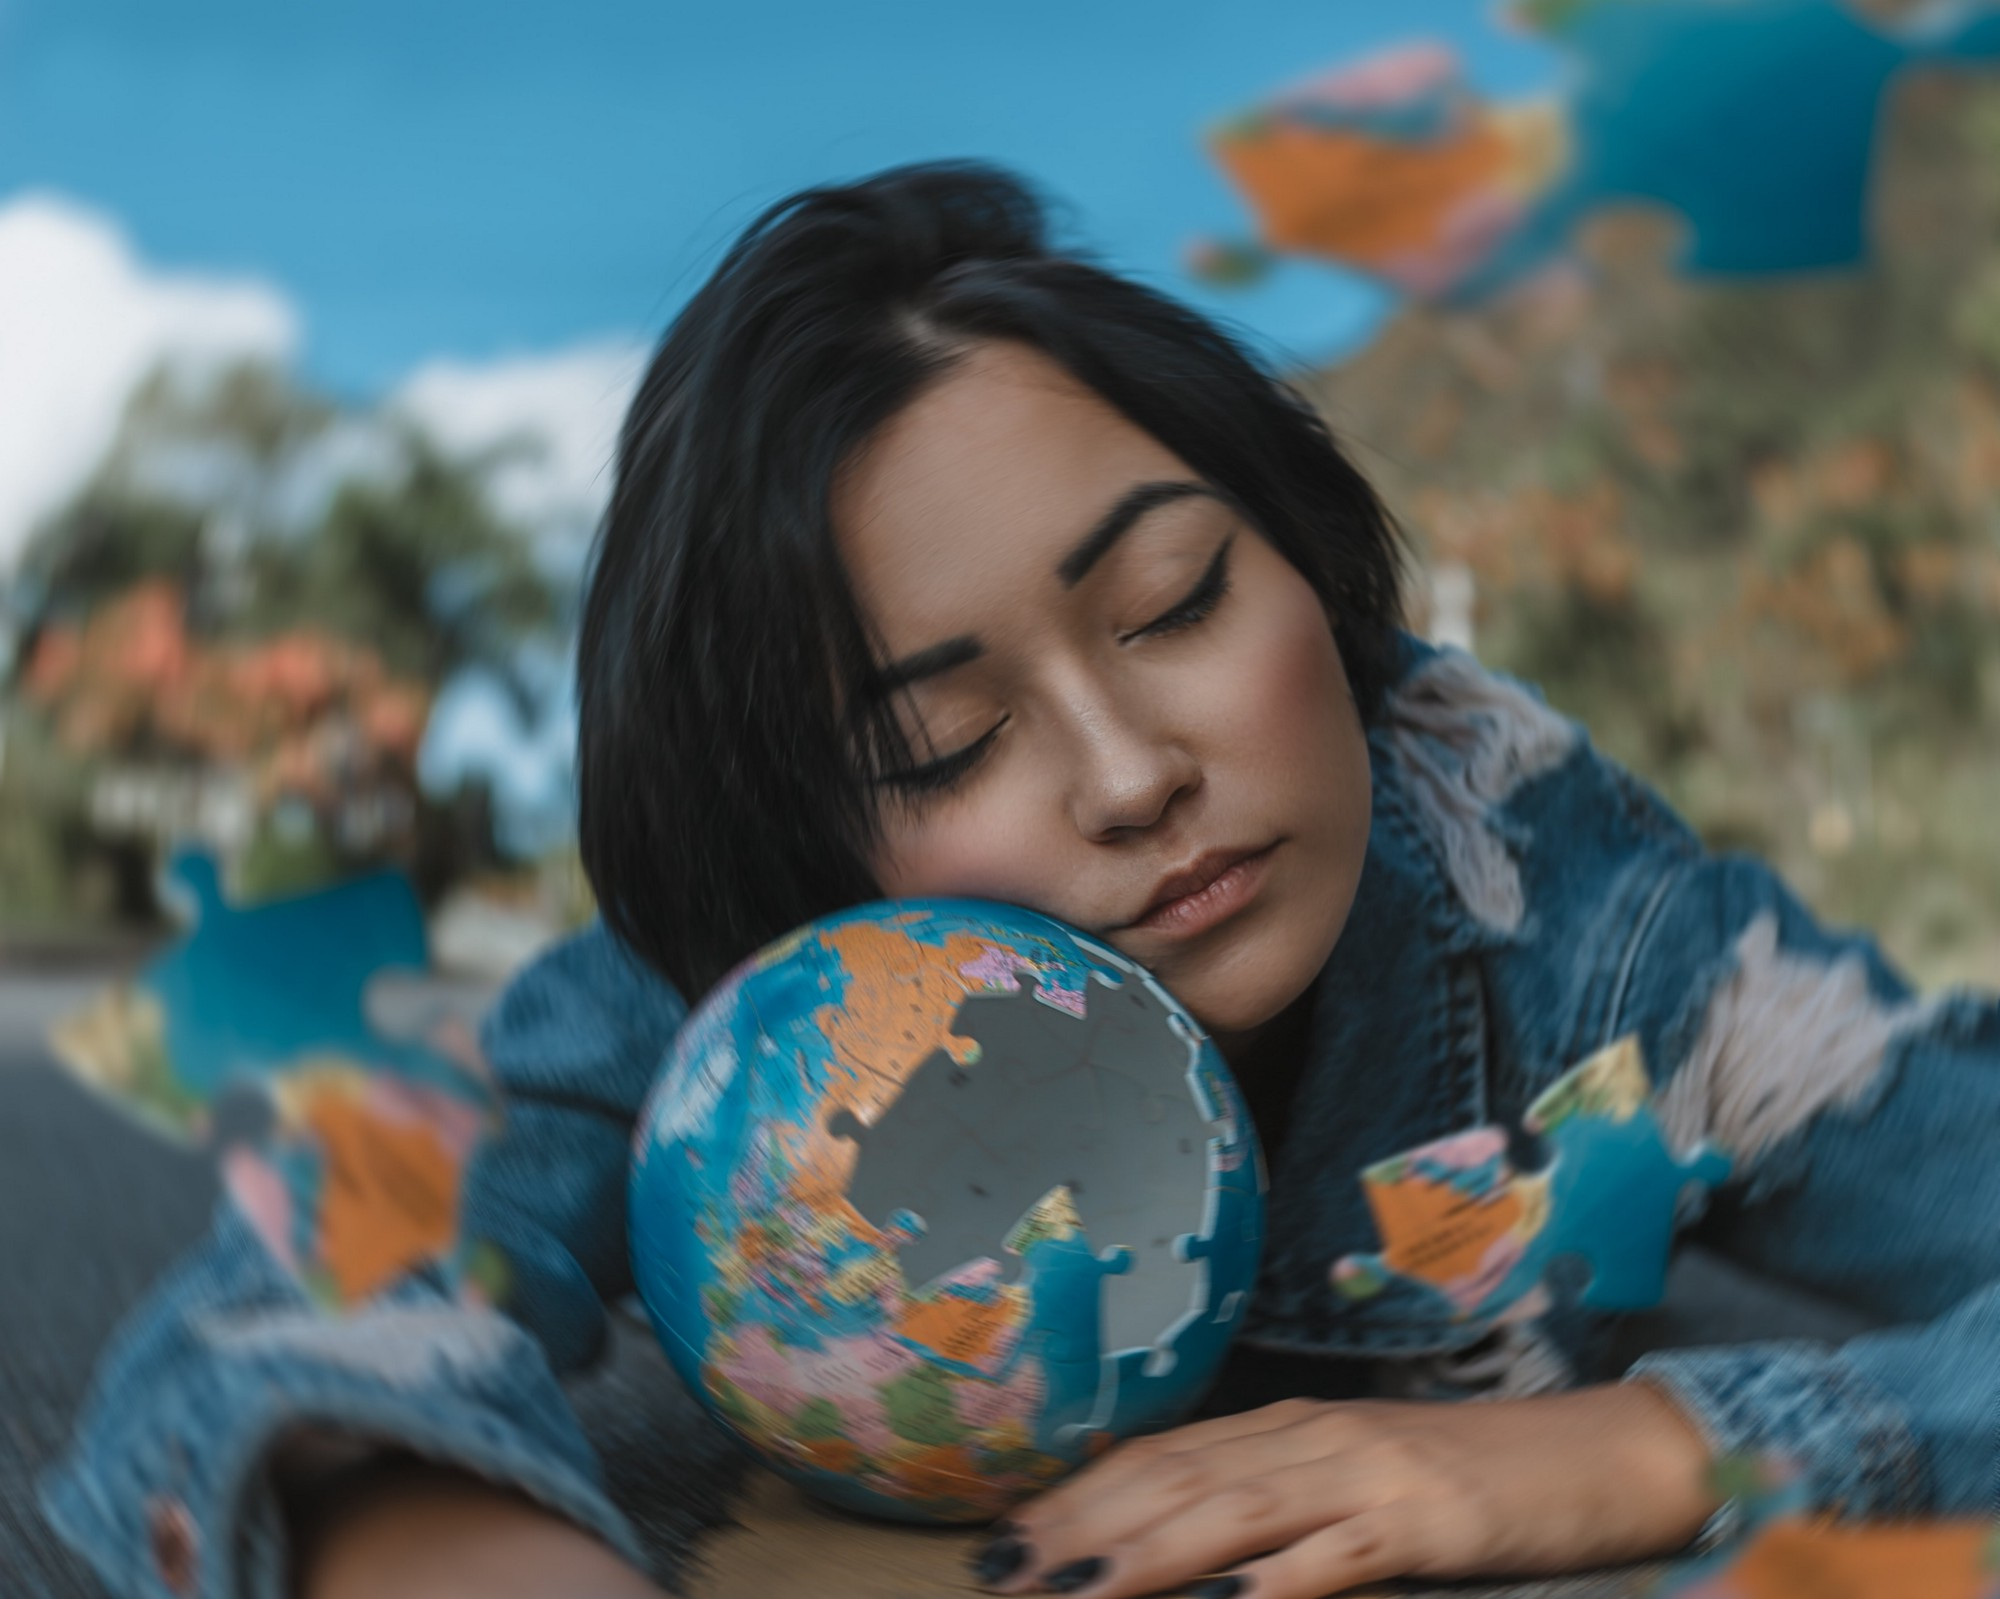 Woman in Blue and White Floral Long Sleeve Shirt Holding A Round Shaped Puzzle and sleeping.